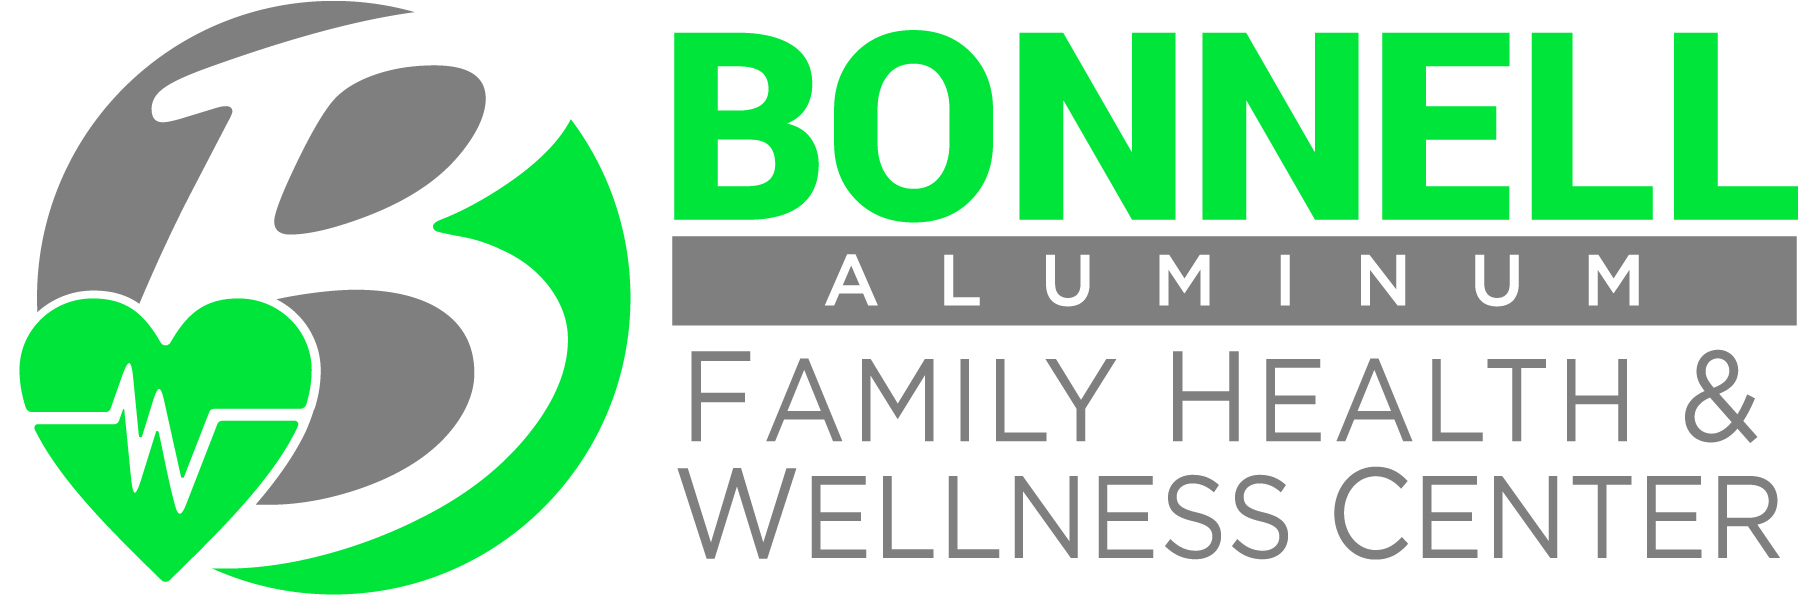 Bonnell Family Health & Wellness Center